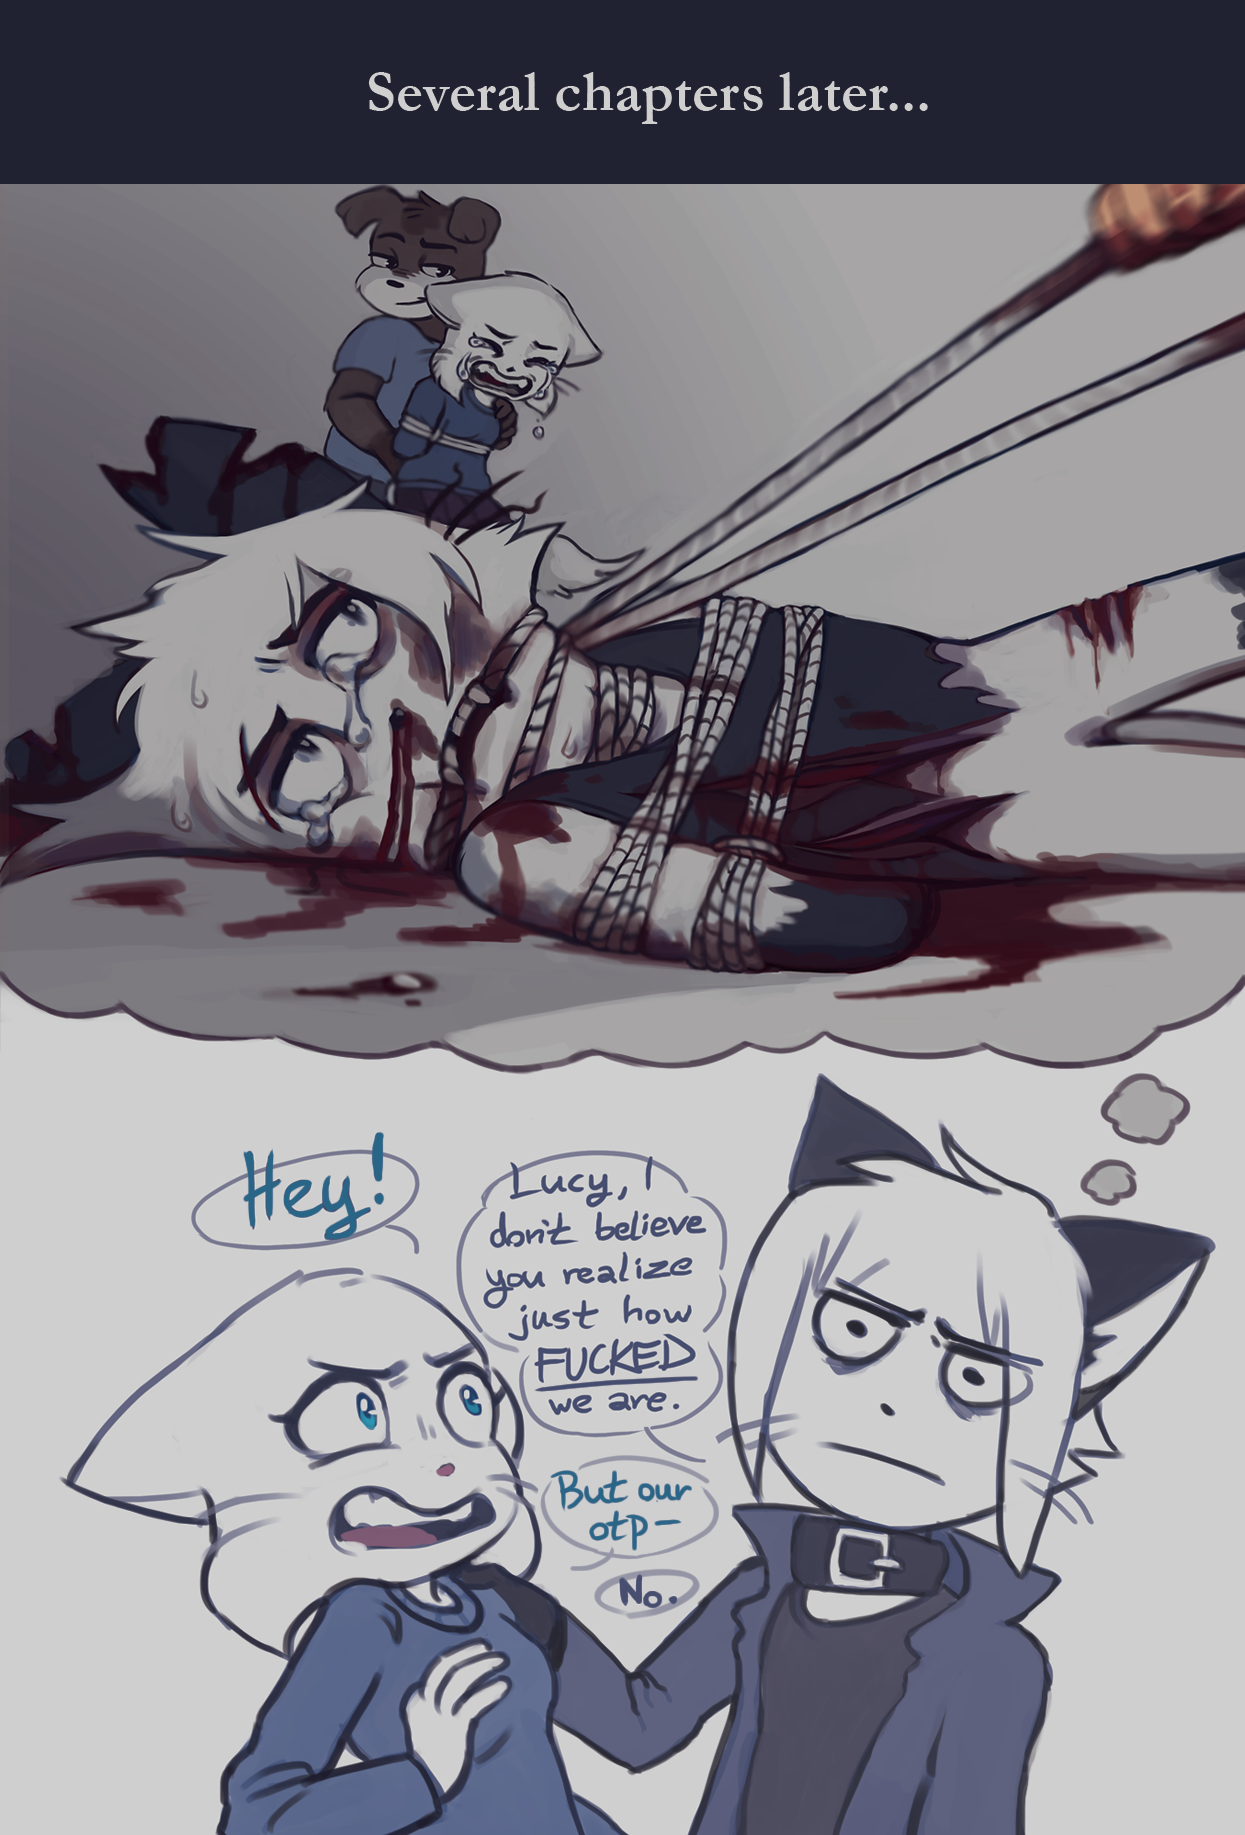 Candybooru image #11836, tagged with Augustus AugustusxLucy IronZelly_(Artist) Lucy blood comic